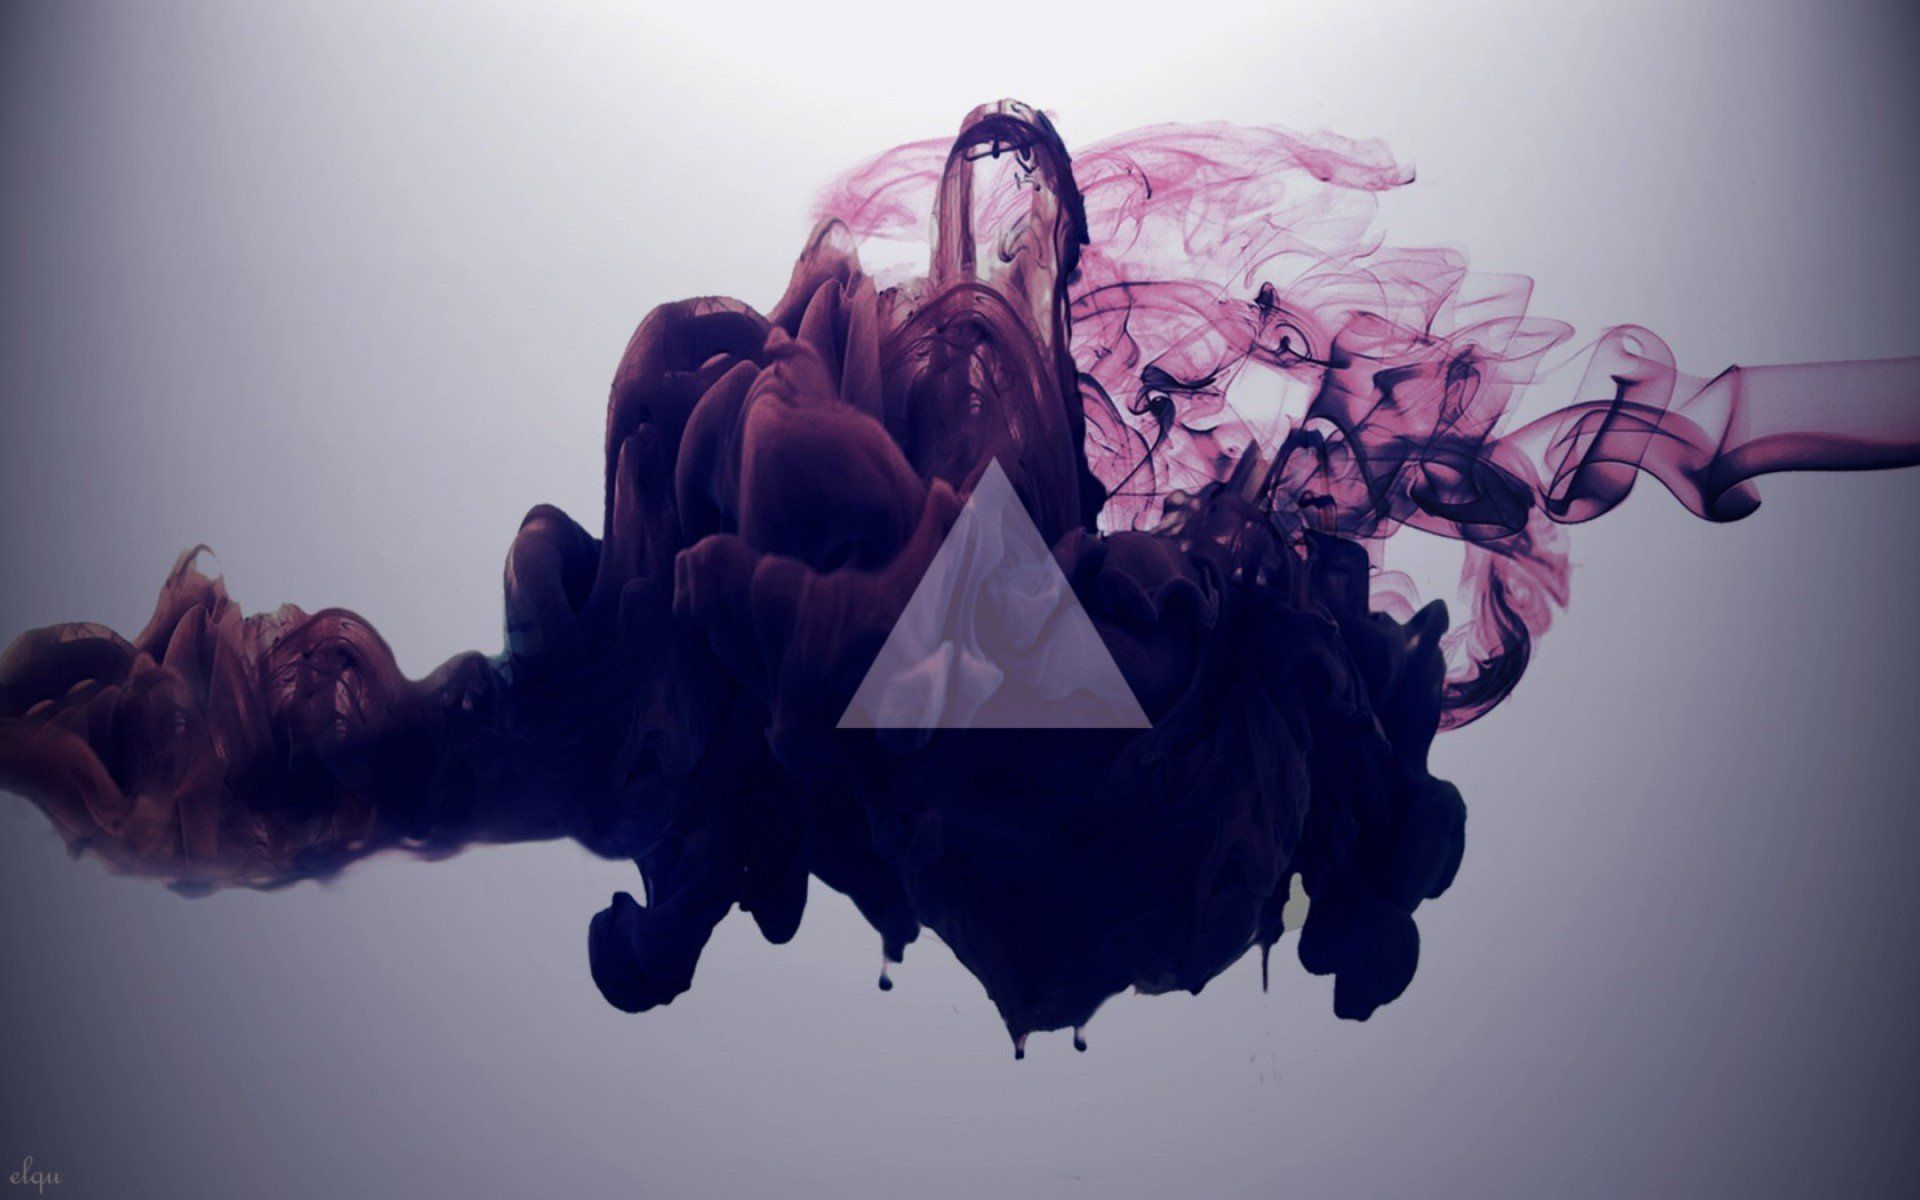 indie tumblr triangles high definition wallpaper for desktop 1920x1200 px 180 77